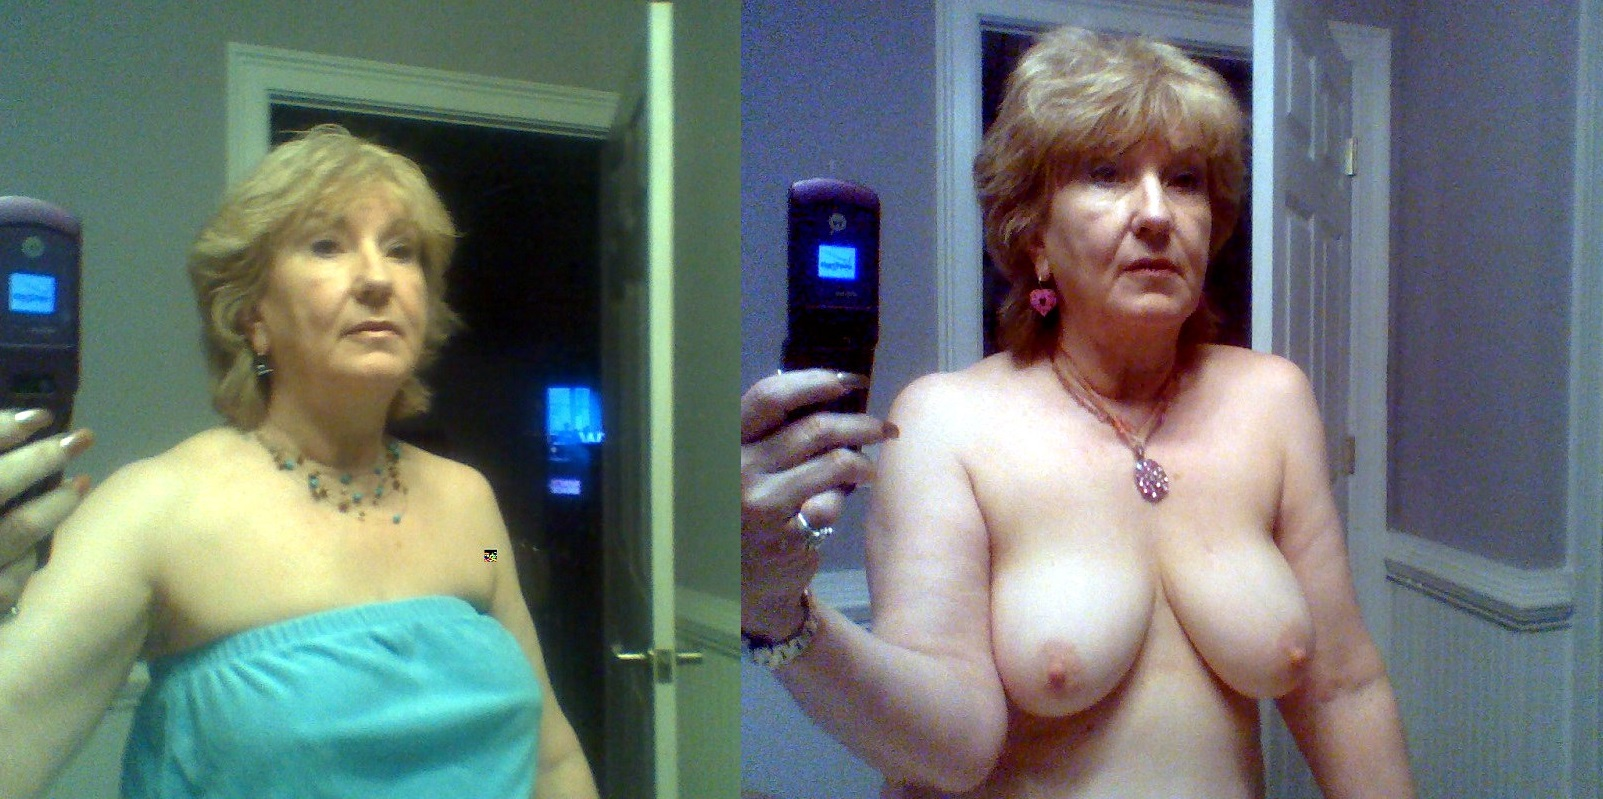 More Dressed Undressed Wives 3